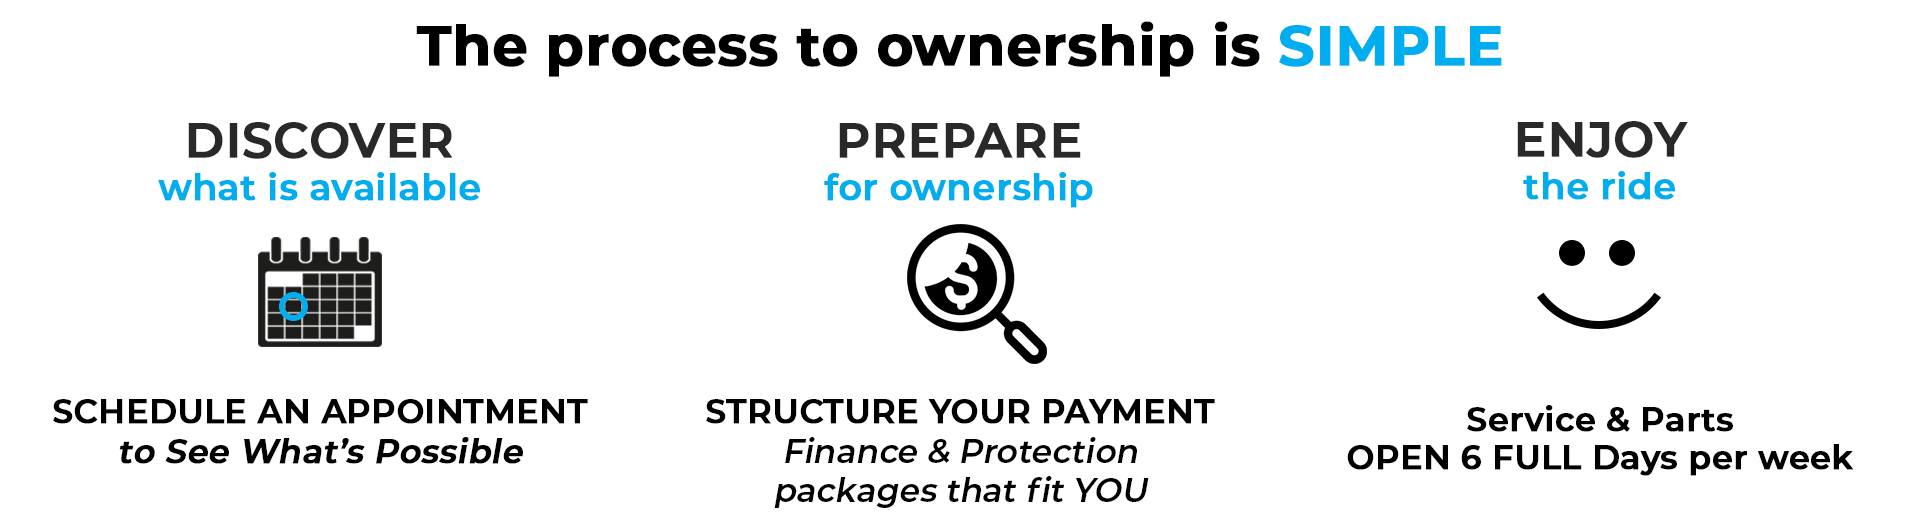 Process to Ownership